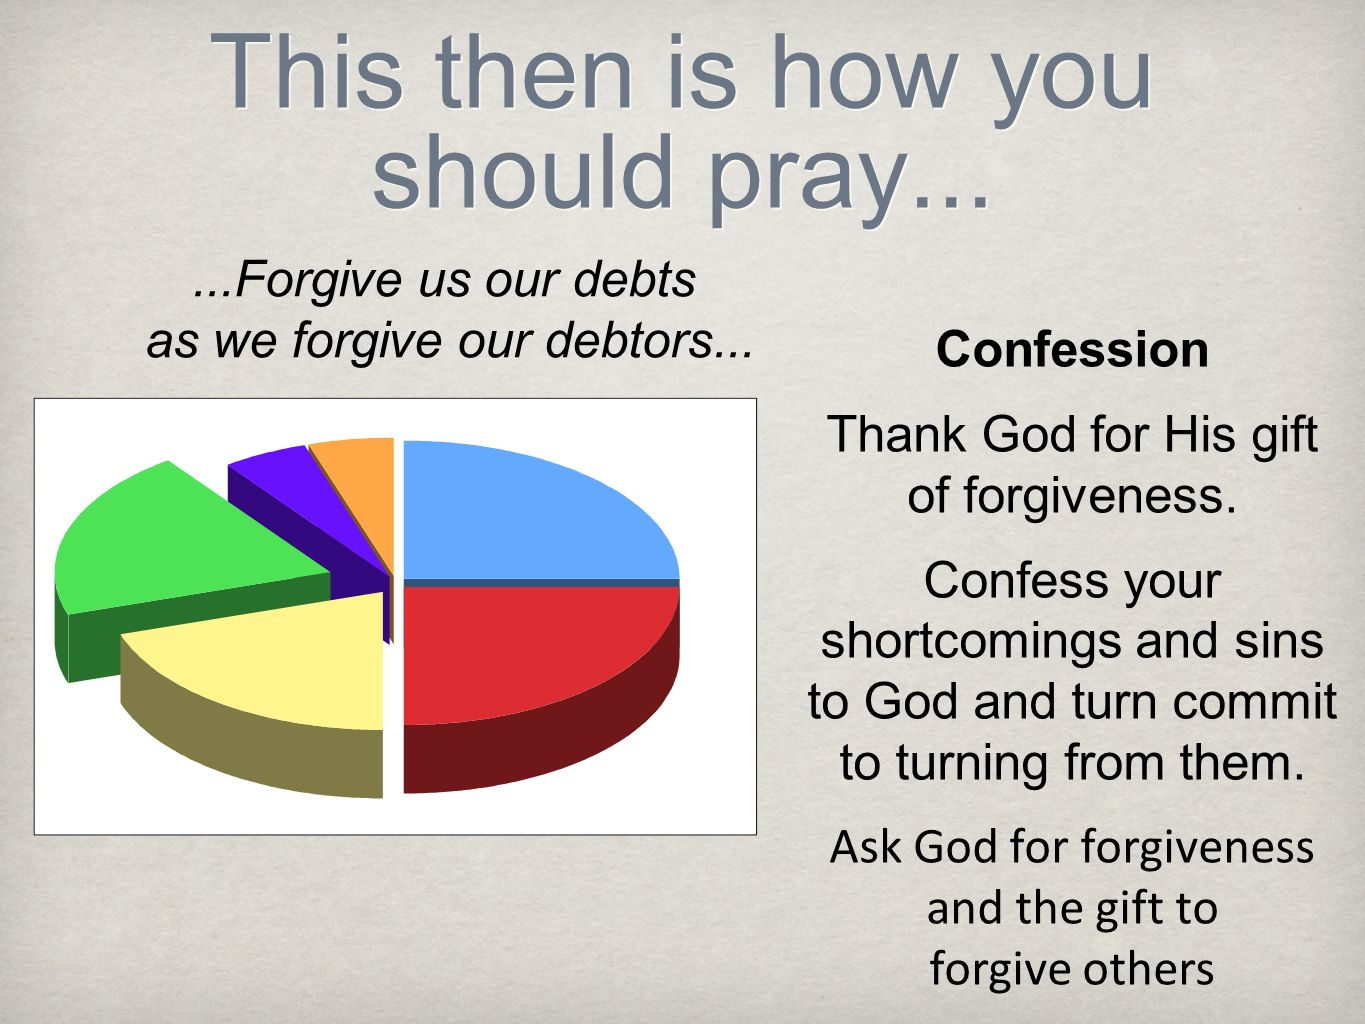 This then is how you should pray......Forgive us our debts as we forgive our debtors... Confession Thank God for His gift of forgiveness. Confess your